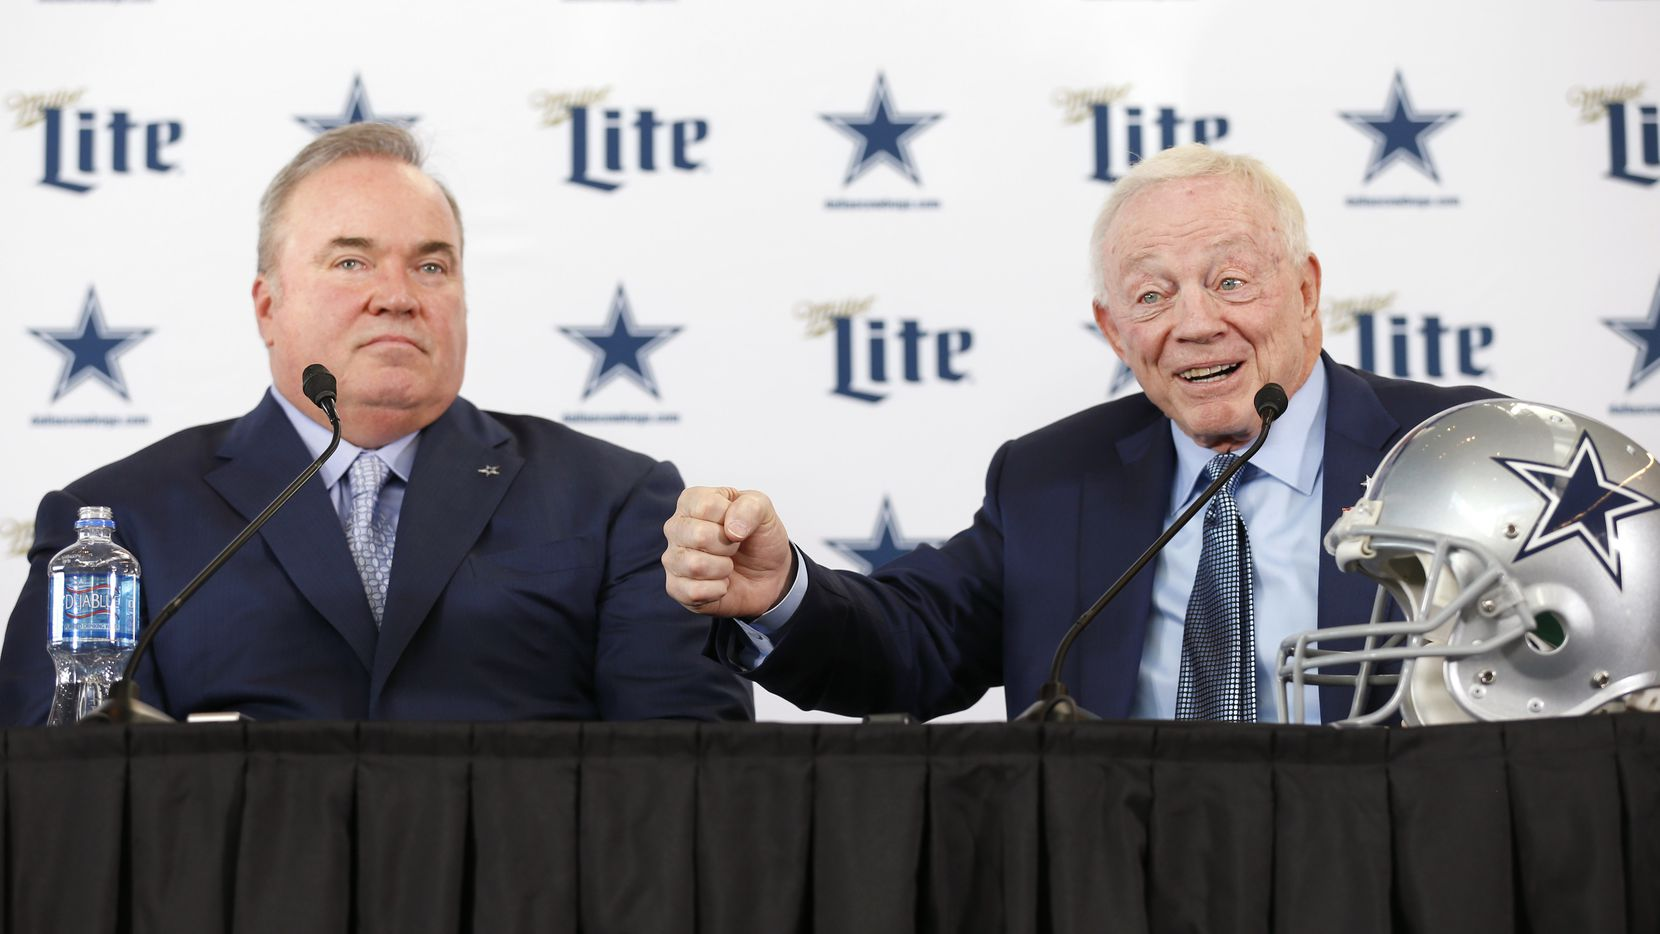 FILE - Cowboys owner and general manager Jerry Jones tells a story about the interview process as newly hired head coach Mike McCarthy looks on during a press conference in the Ford Center at The Star in Frisco on Wednesday, Jan. 8, 2020.